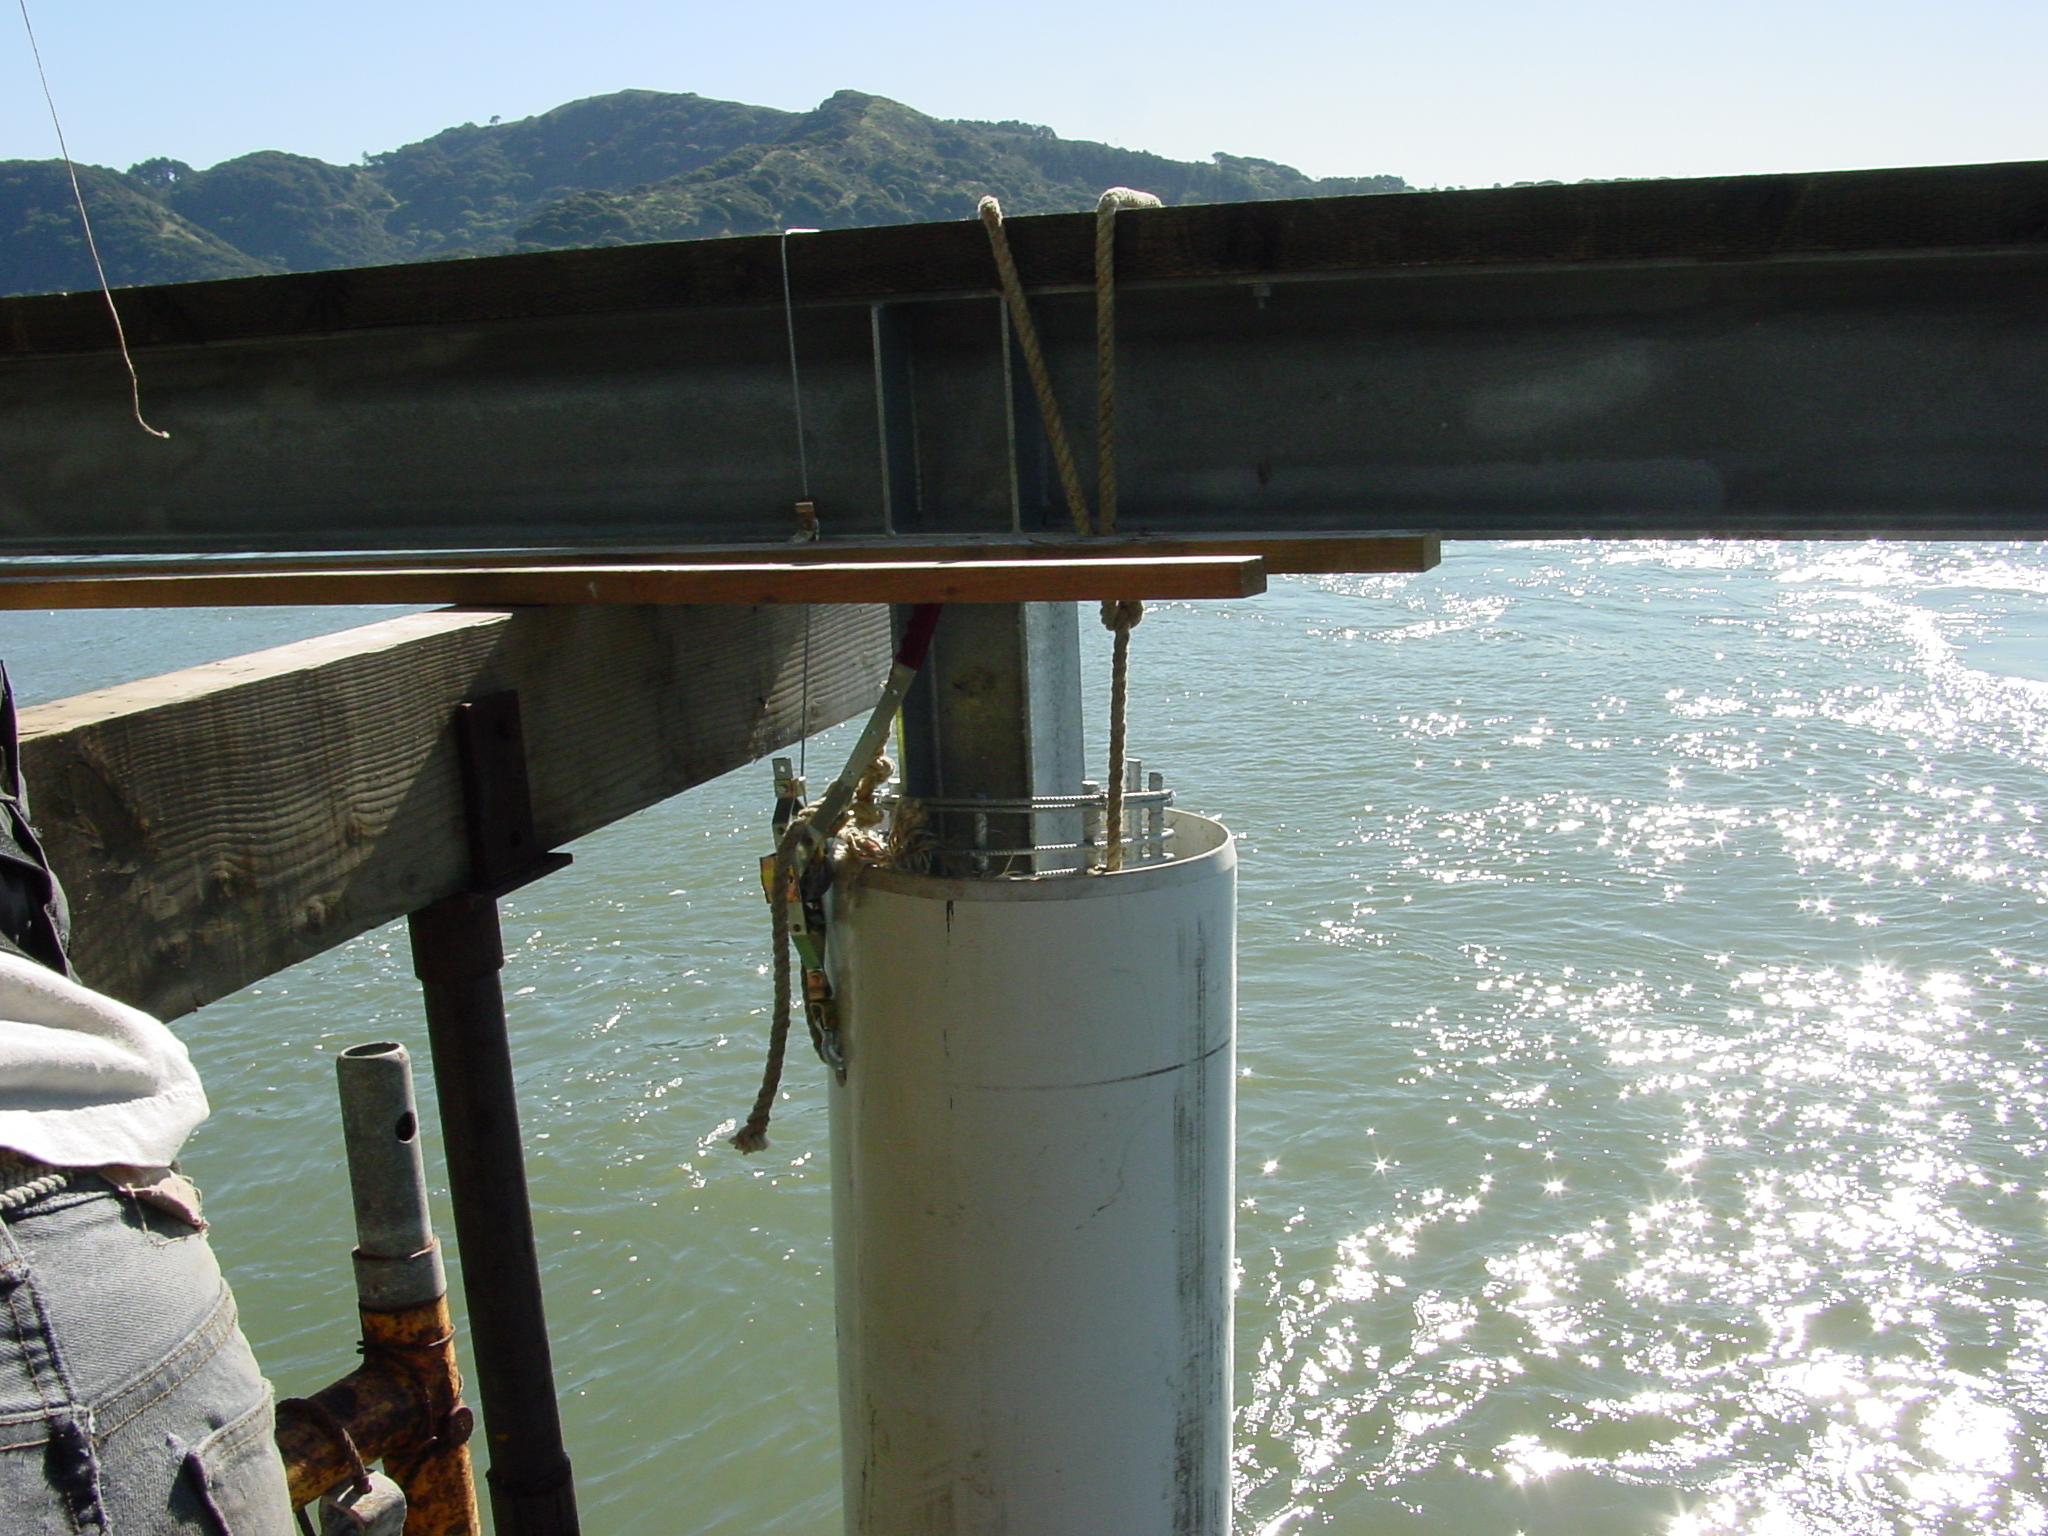 Installed pier and beam system over water